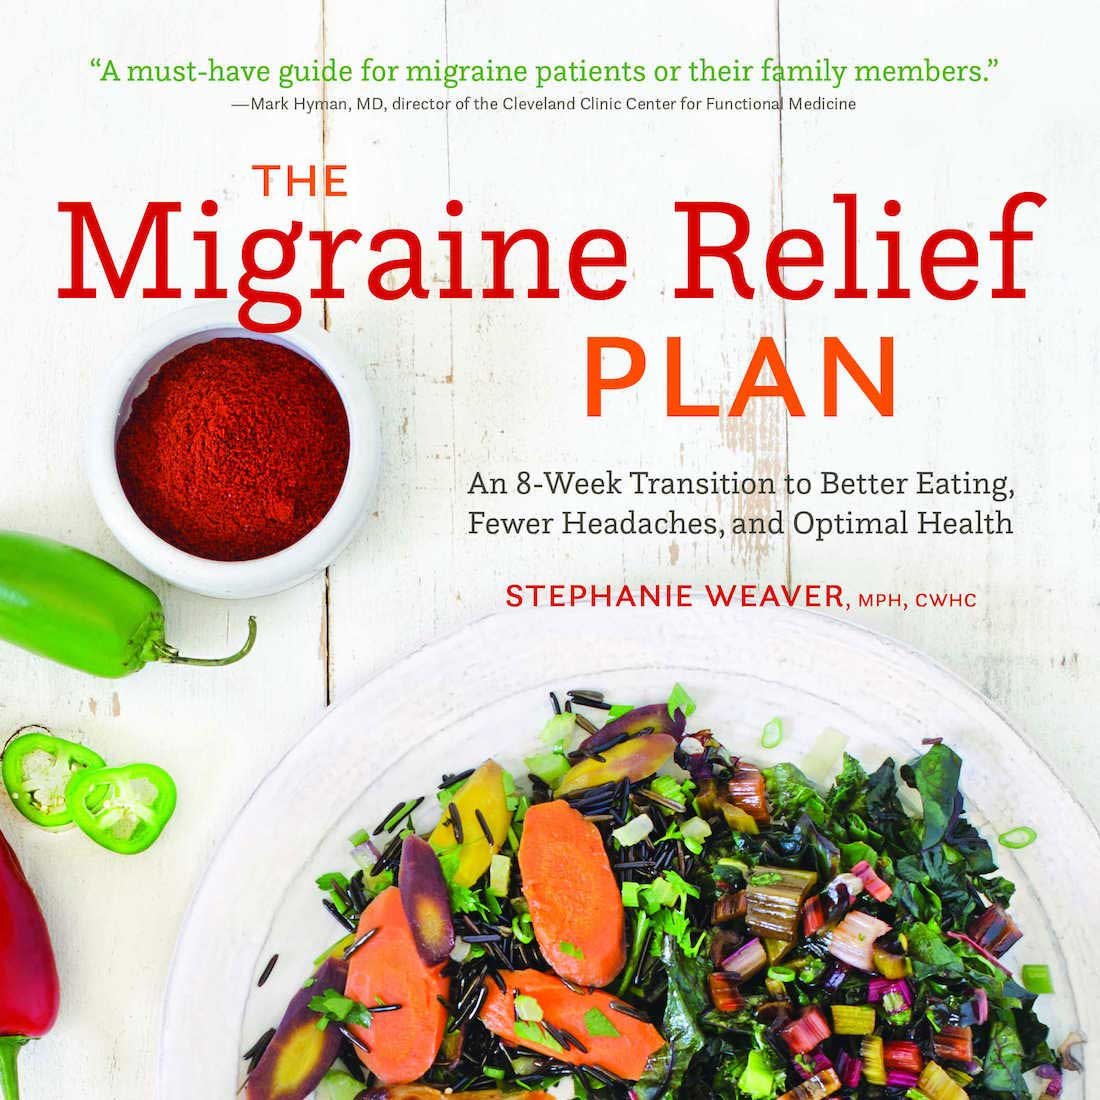 The Migraine Relief Plan By Stephanie Weaver MPH, CWHC